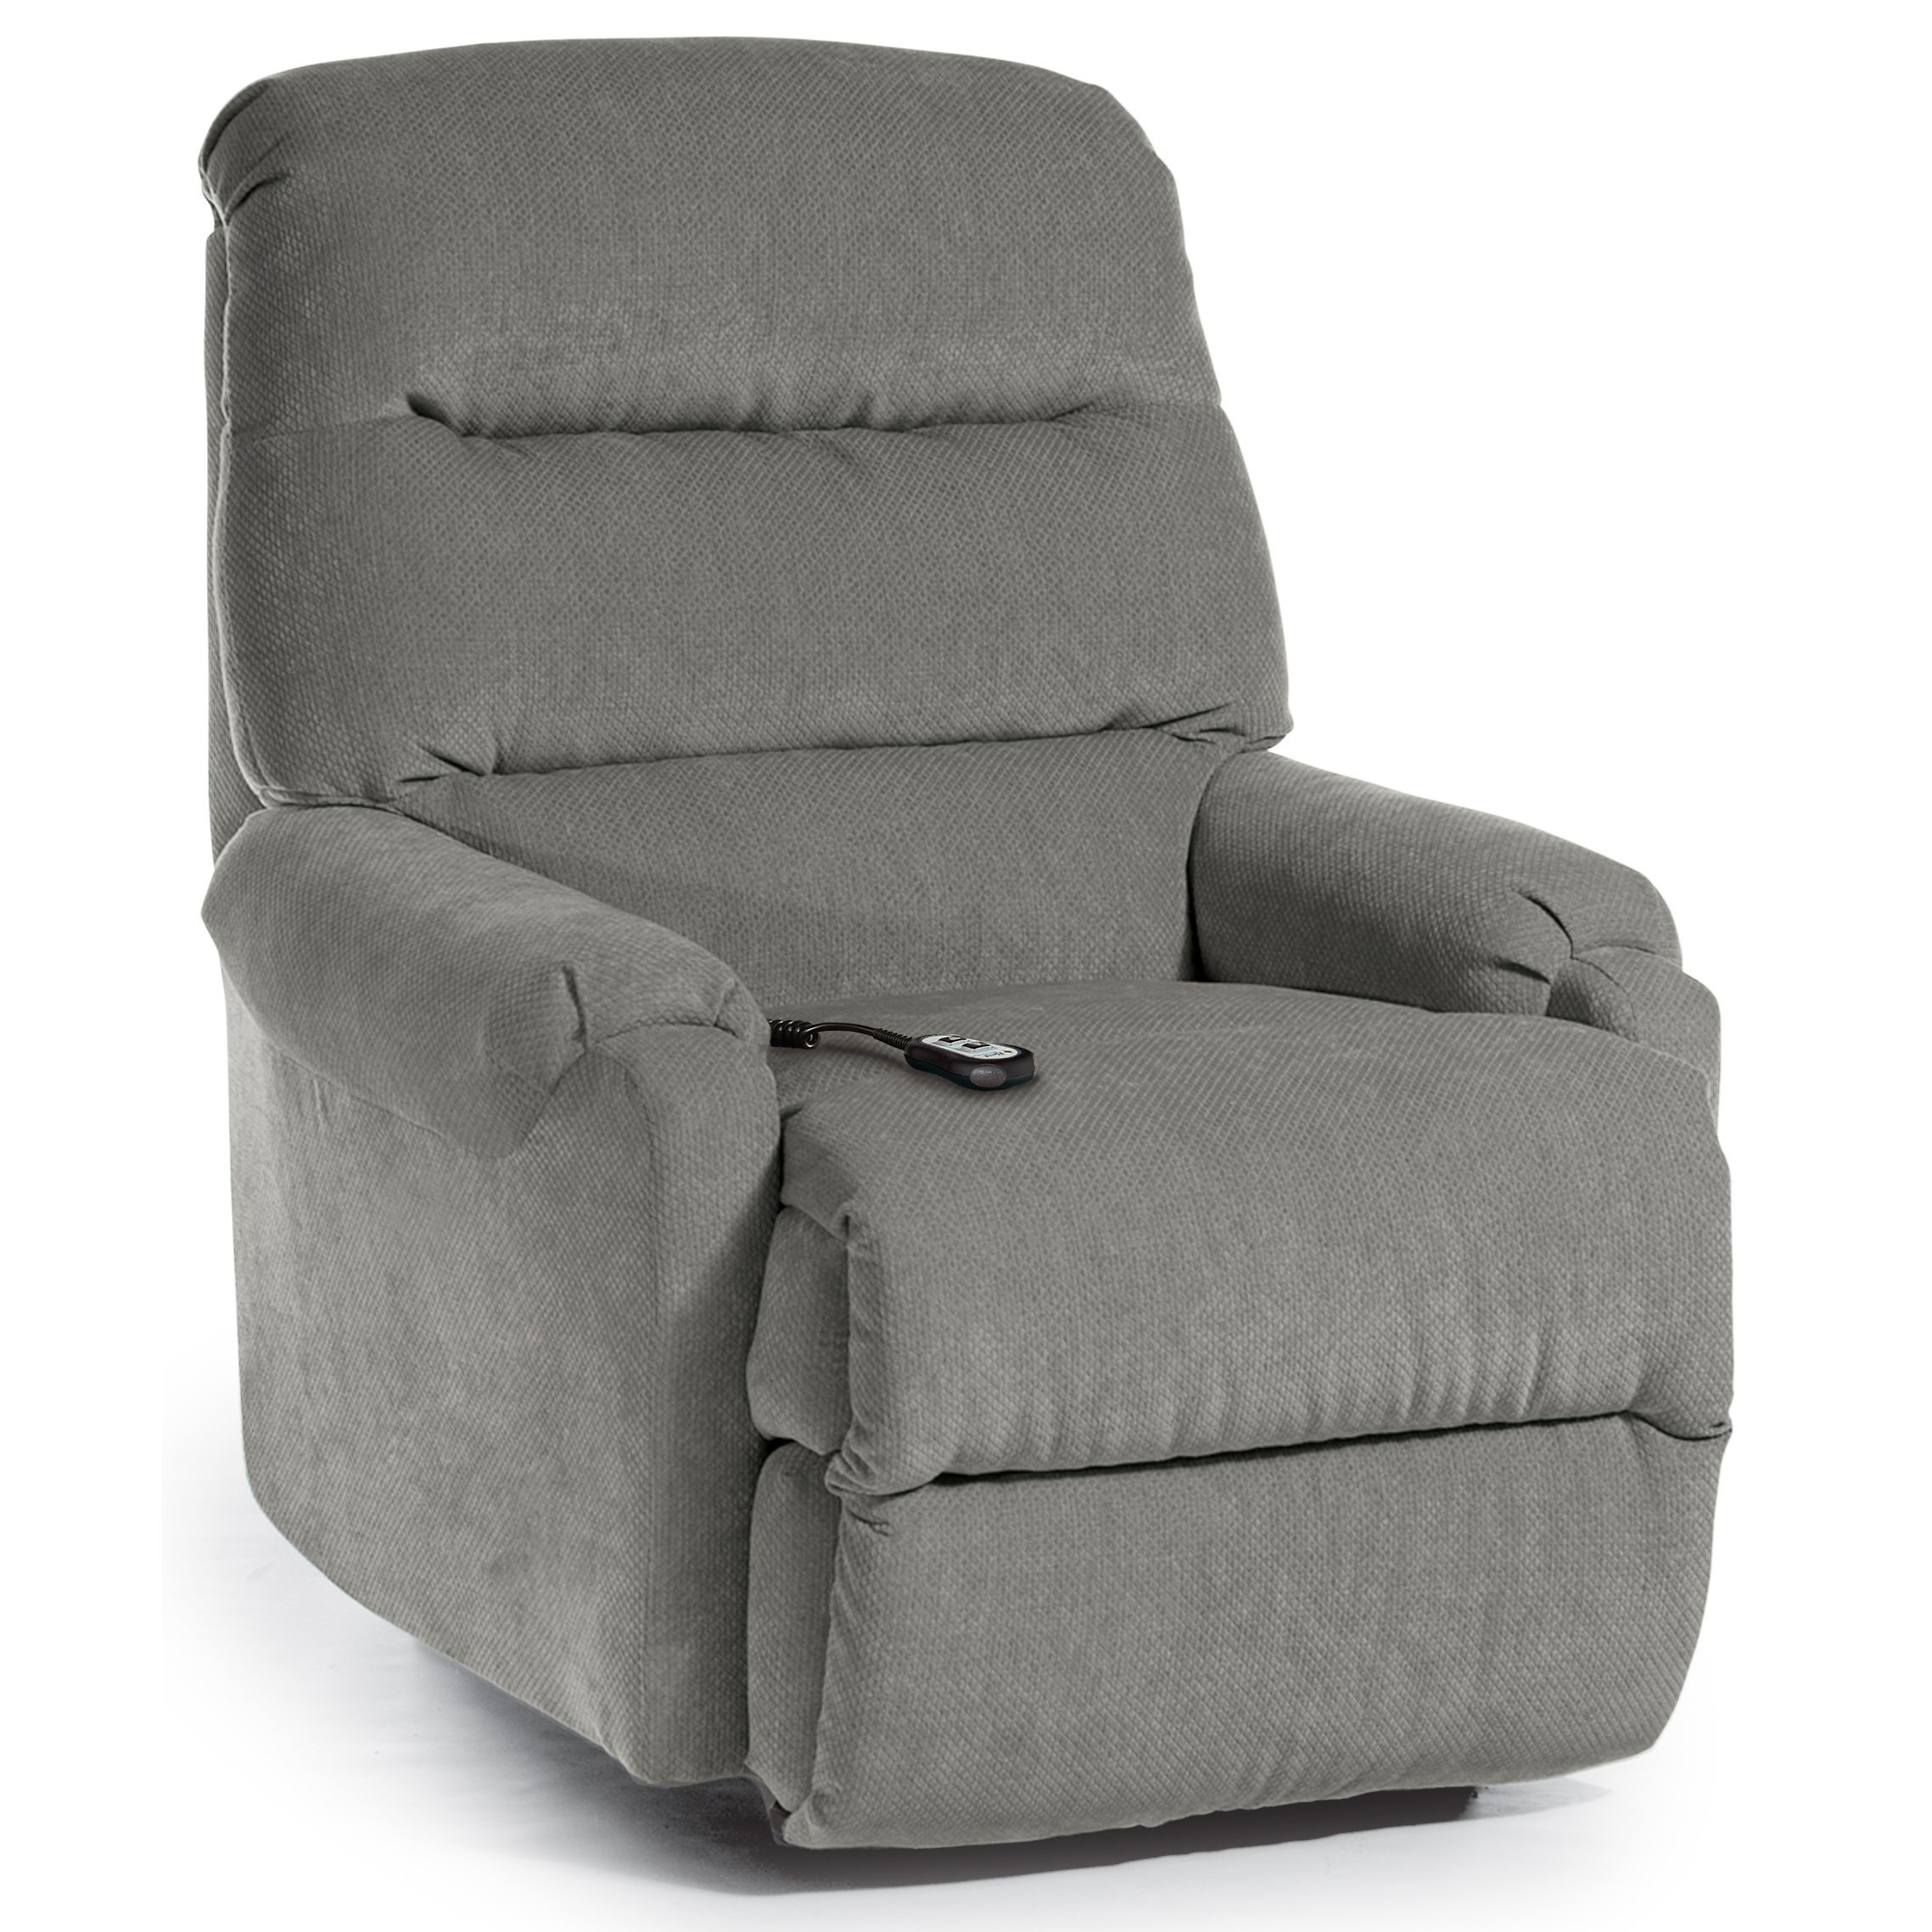 Best Home Furnishings Recliners - Petite Sedgefield Power Lift Recliner - Item Number: 9AW61